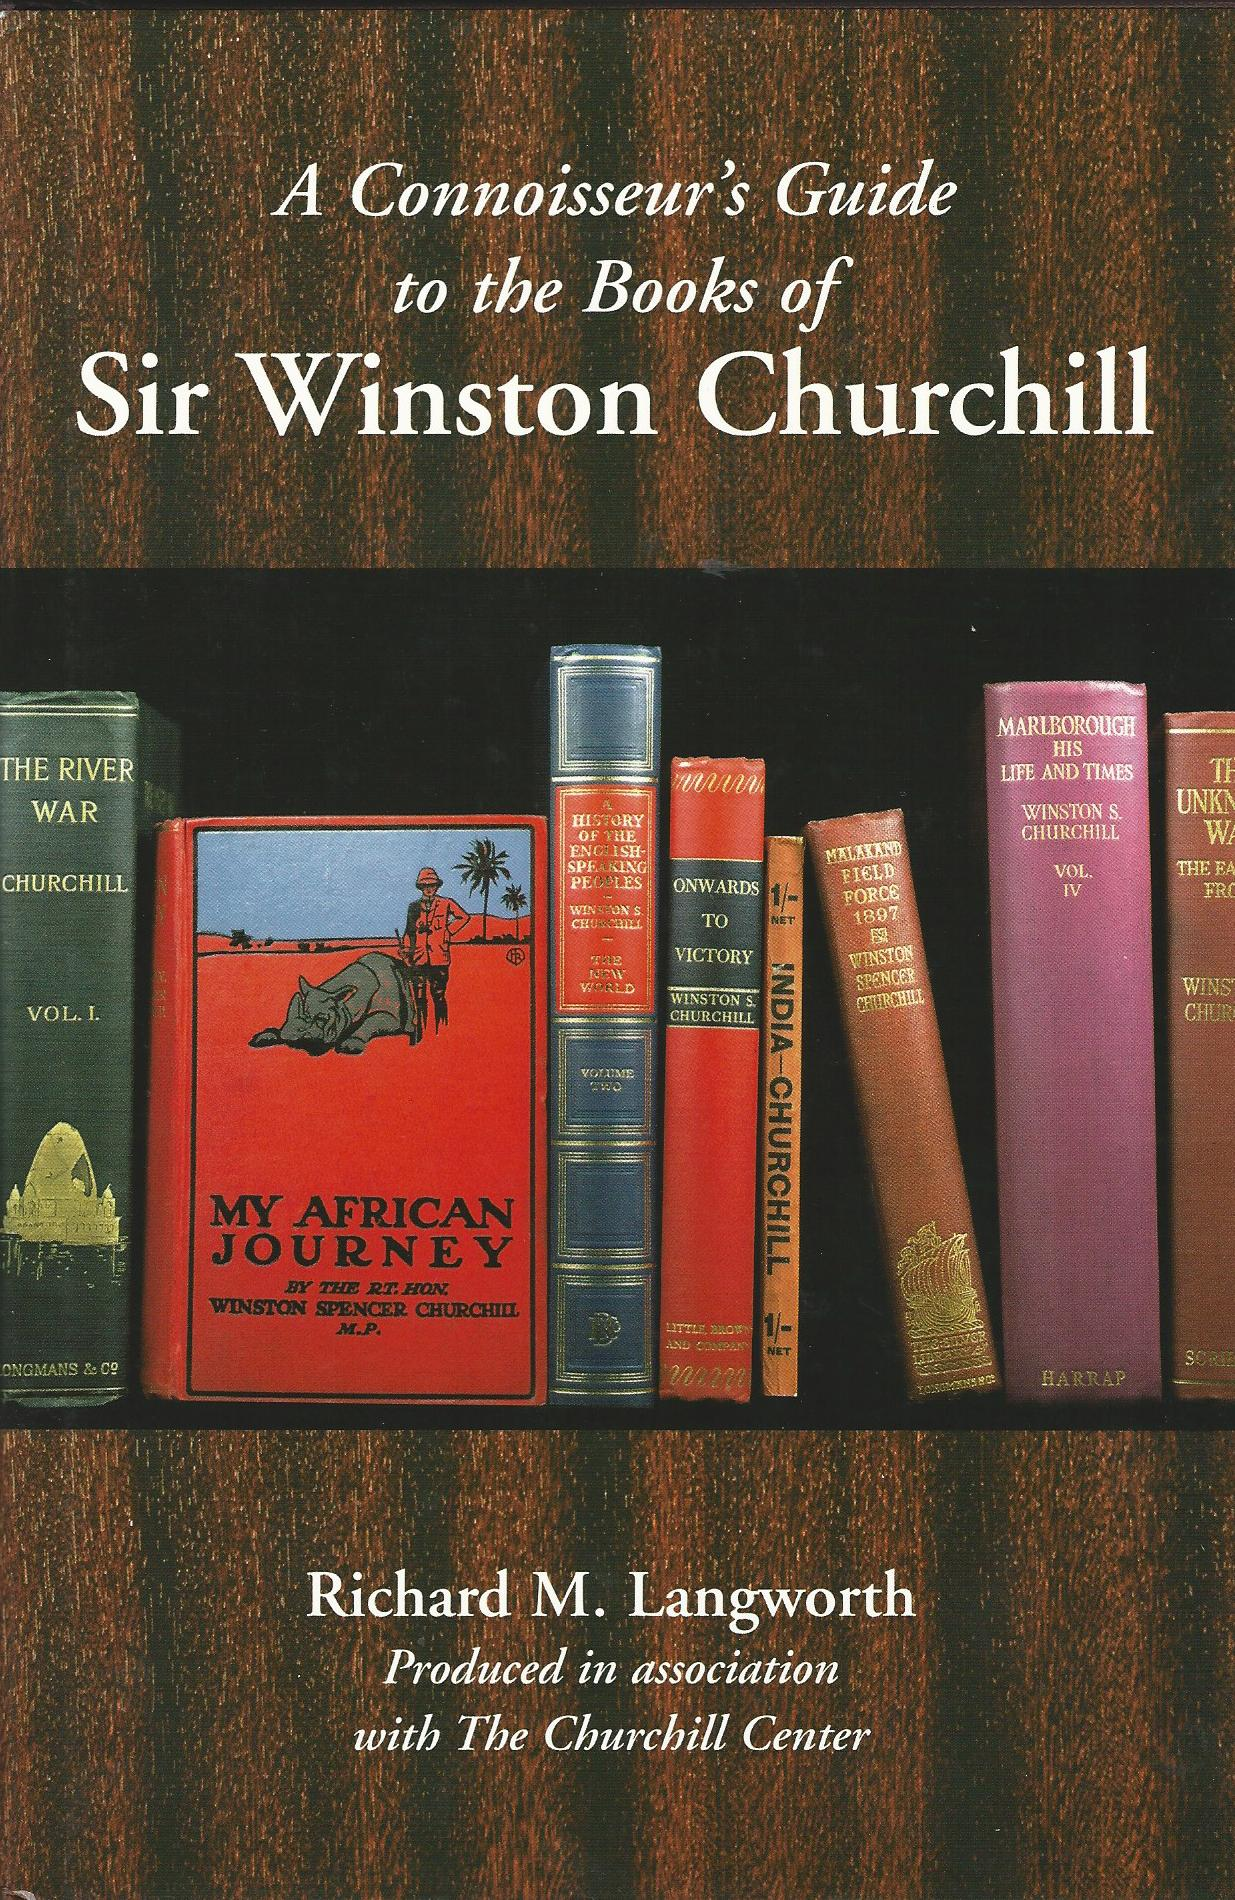 Image for A Connoisseur's Guide to the Books of Sir Winston Churchill